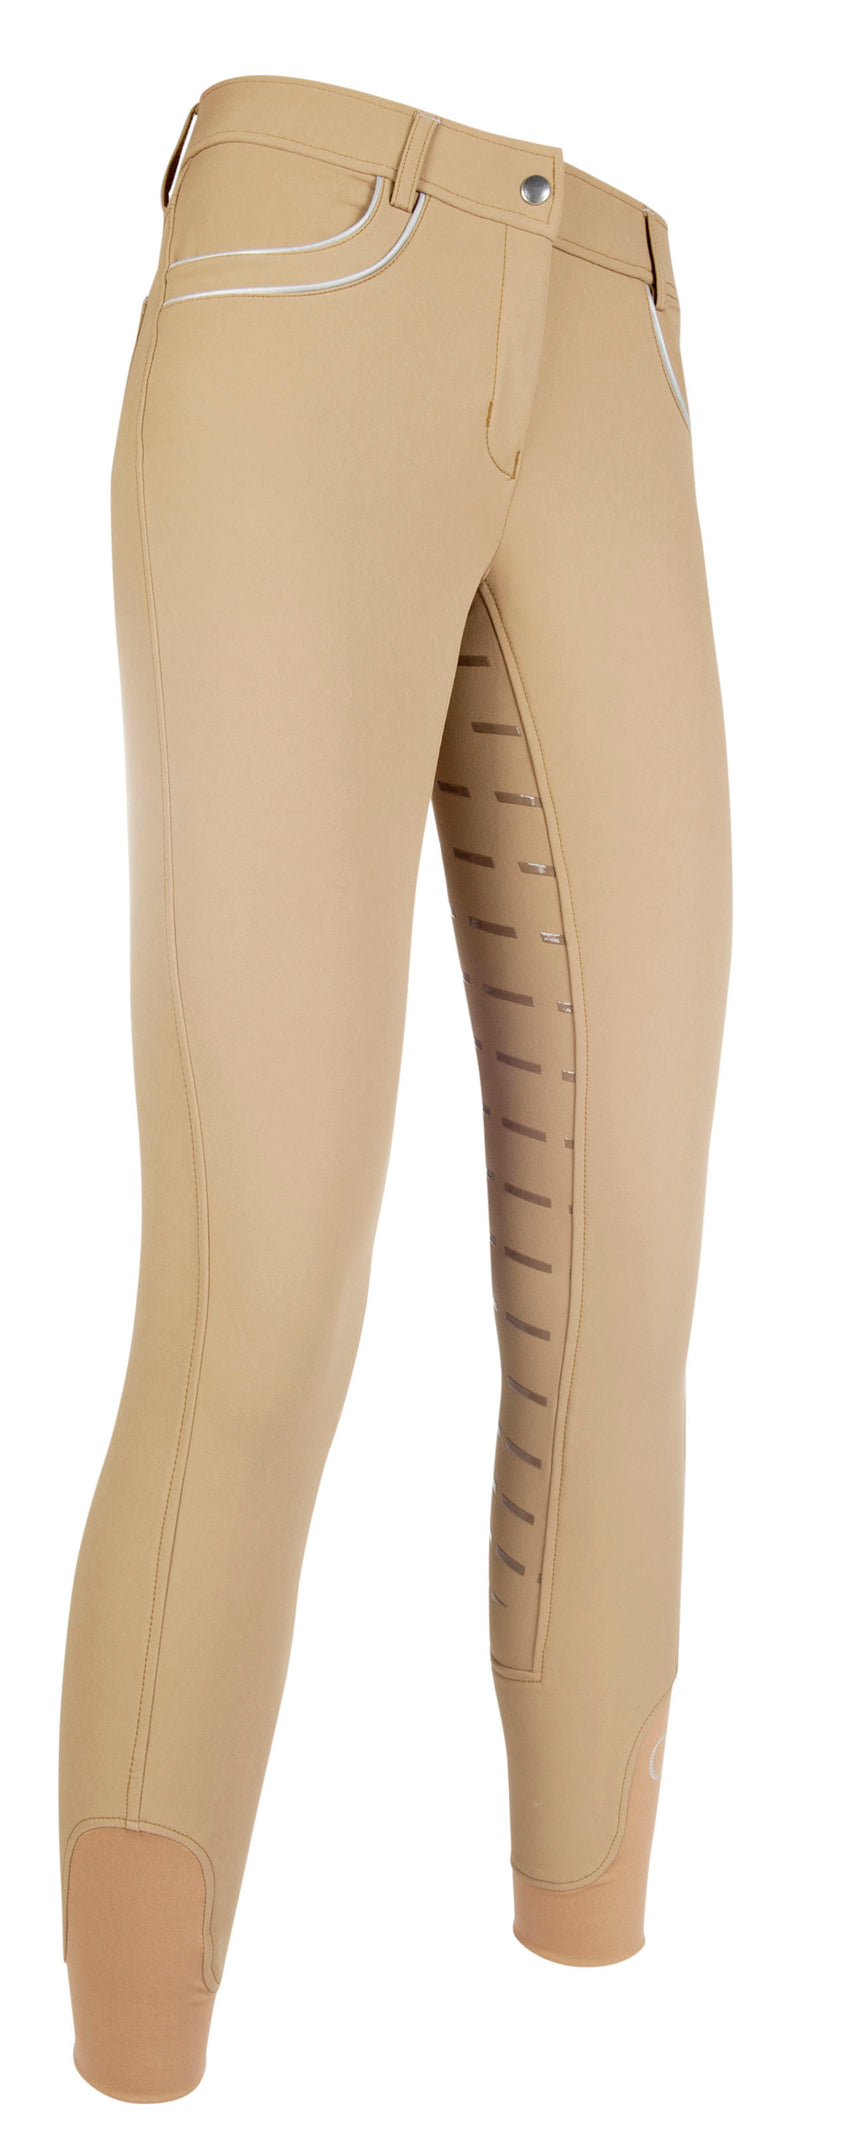 Summer breeches with grips